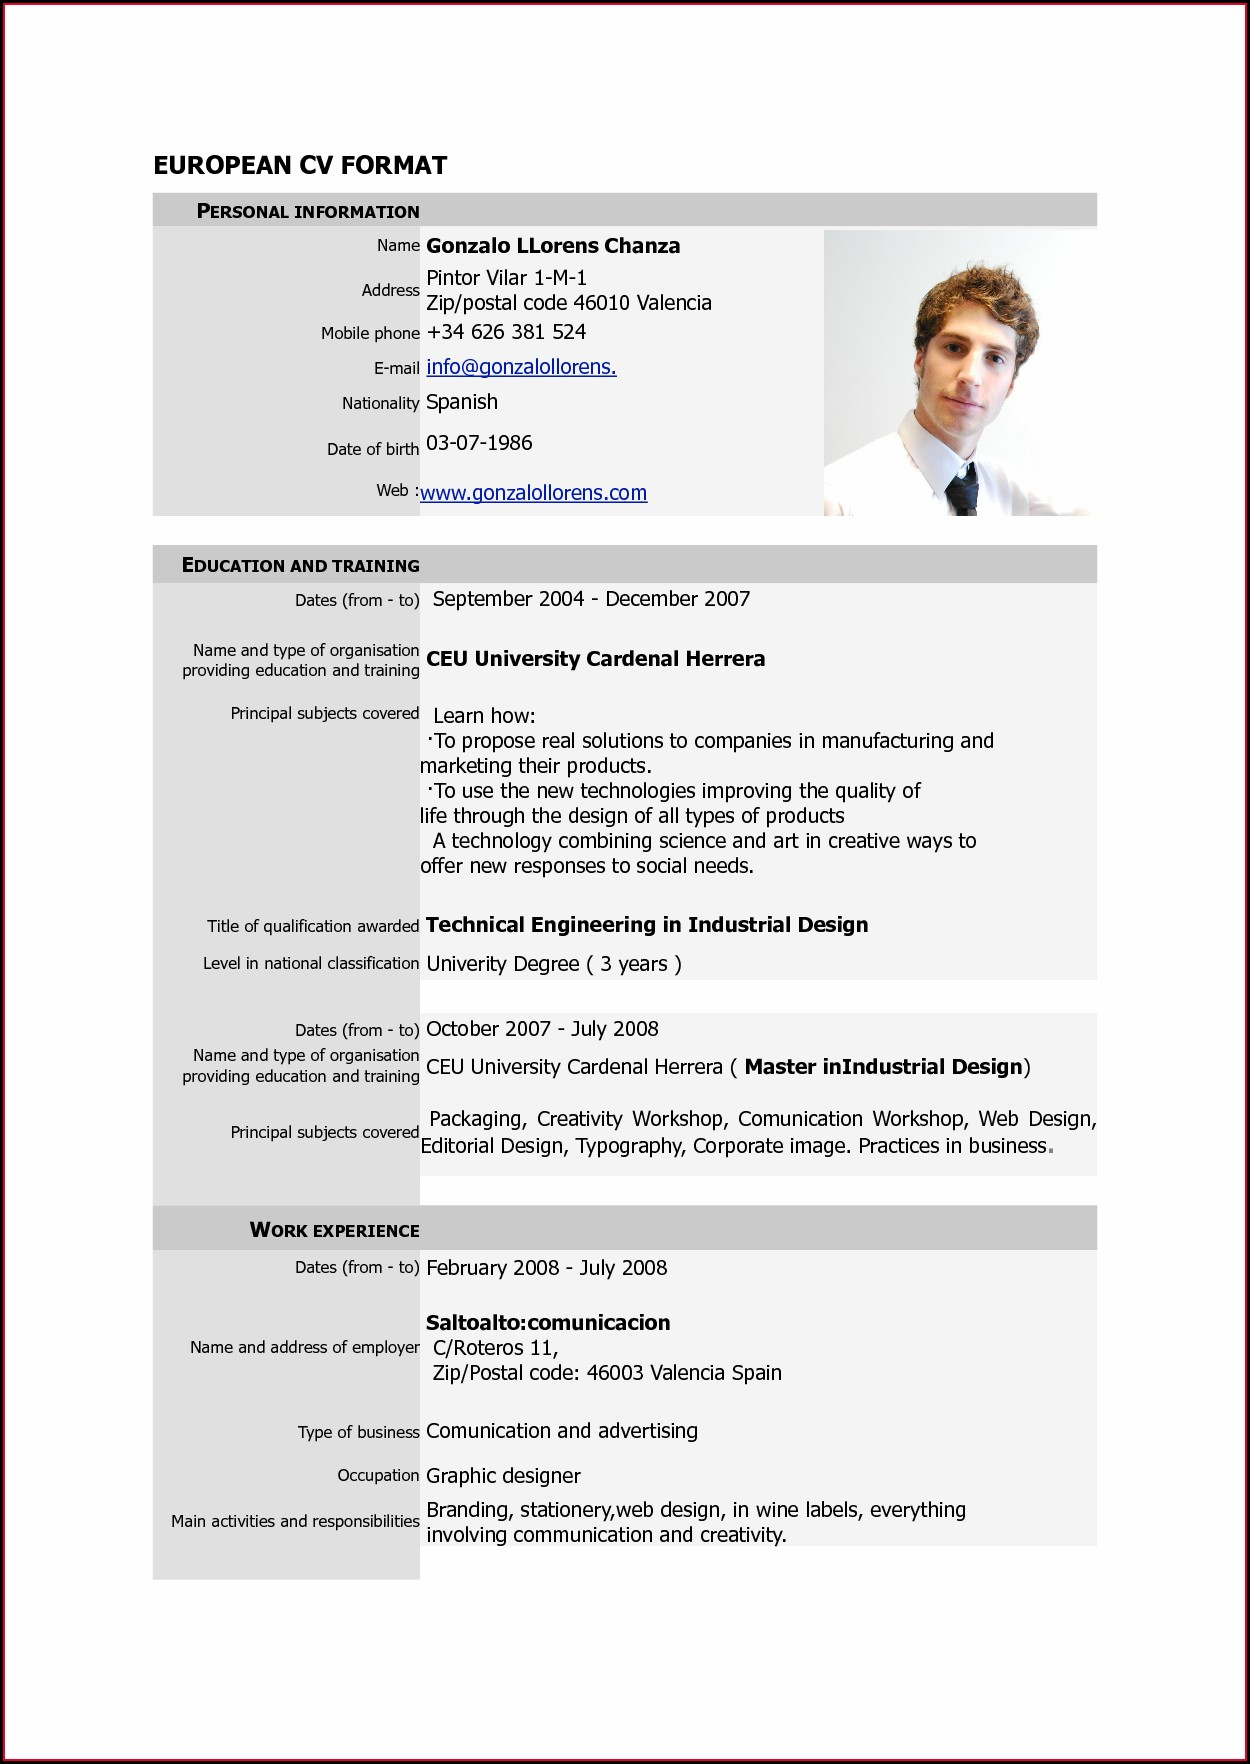 Job Application Pdf Curriculum Vitae Format Pdf Free Download